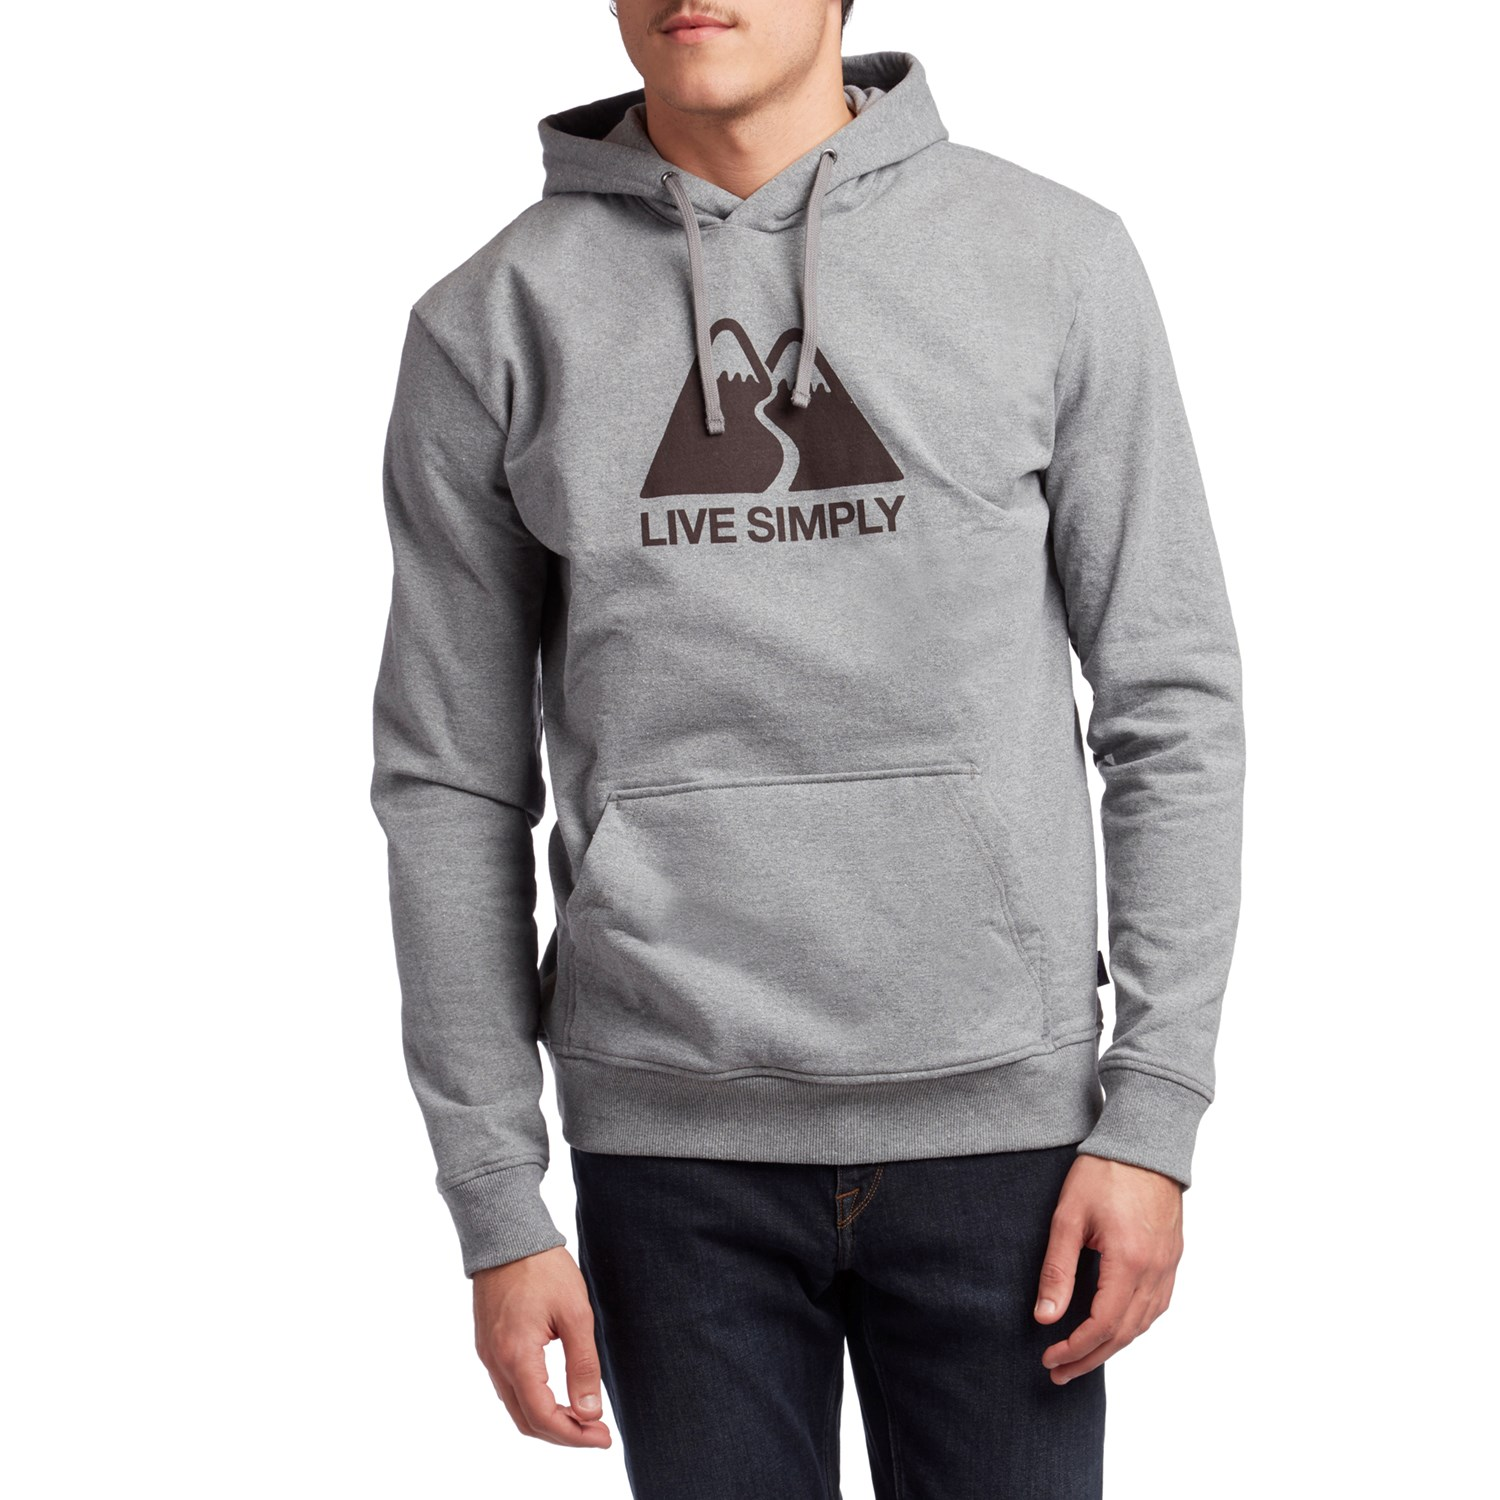 Patagonia Live Winding Winding Live Simply Simply Uprisal Patagonia Uprisal wBfq6C8CA